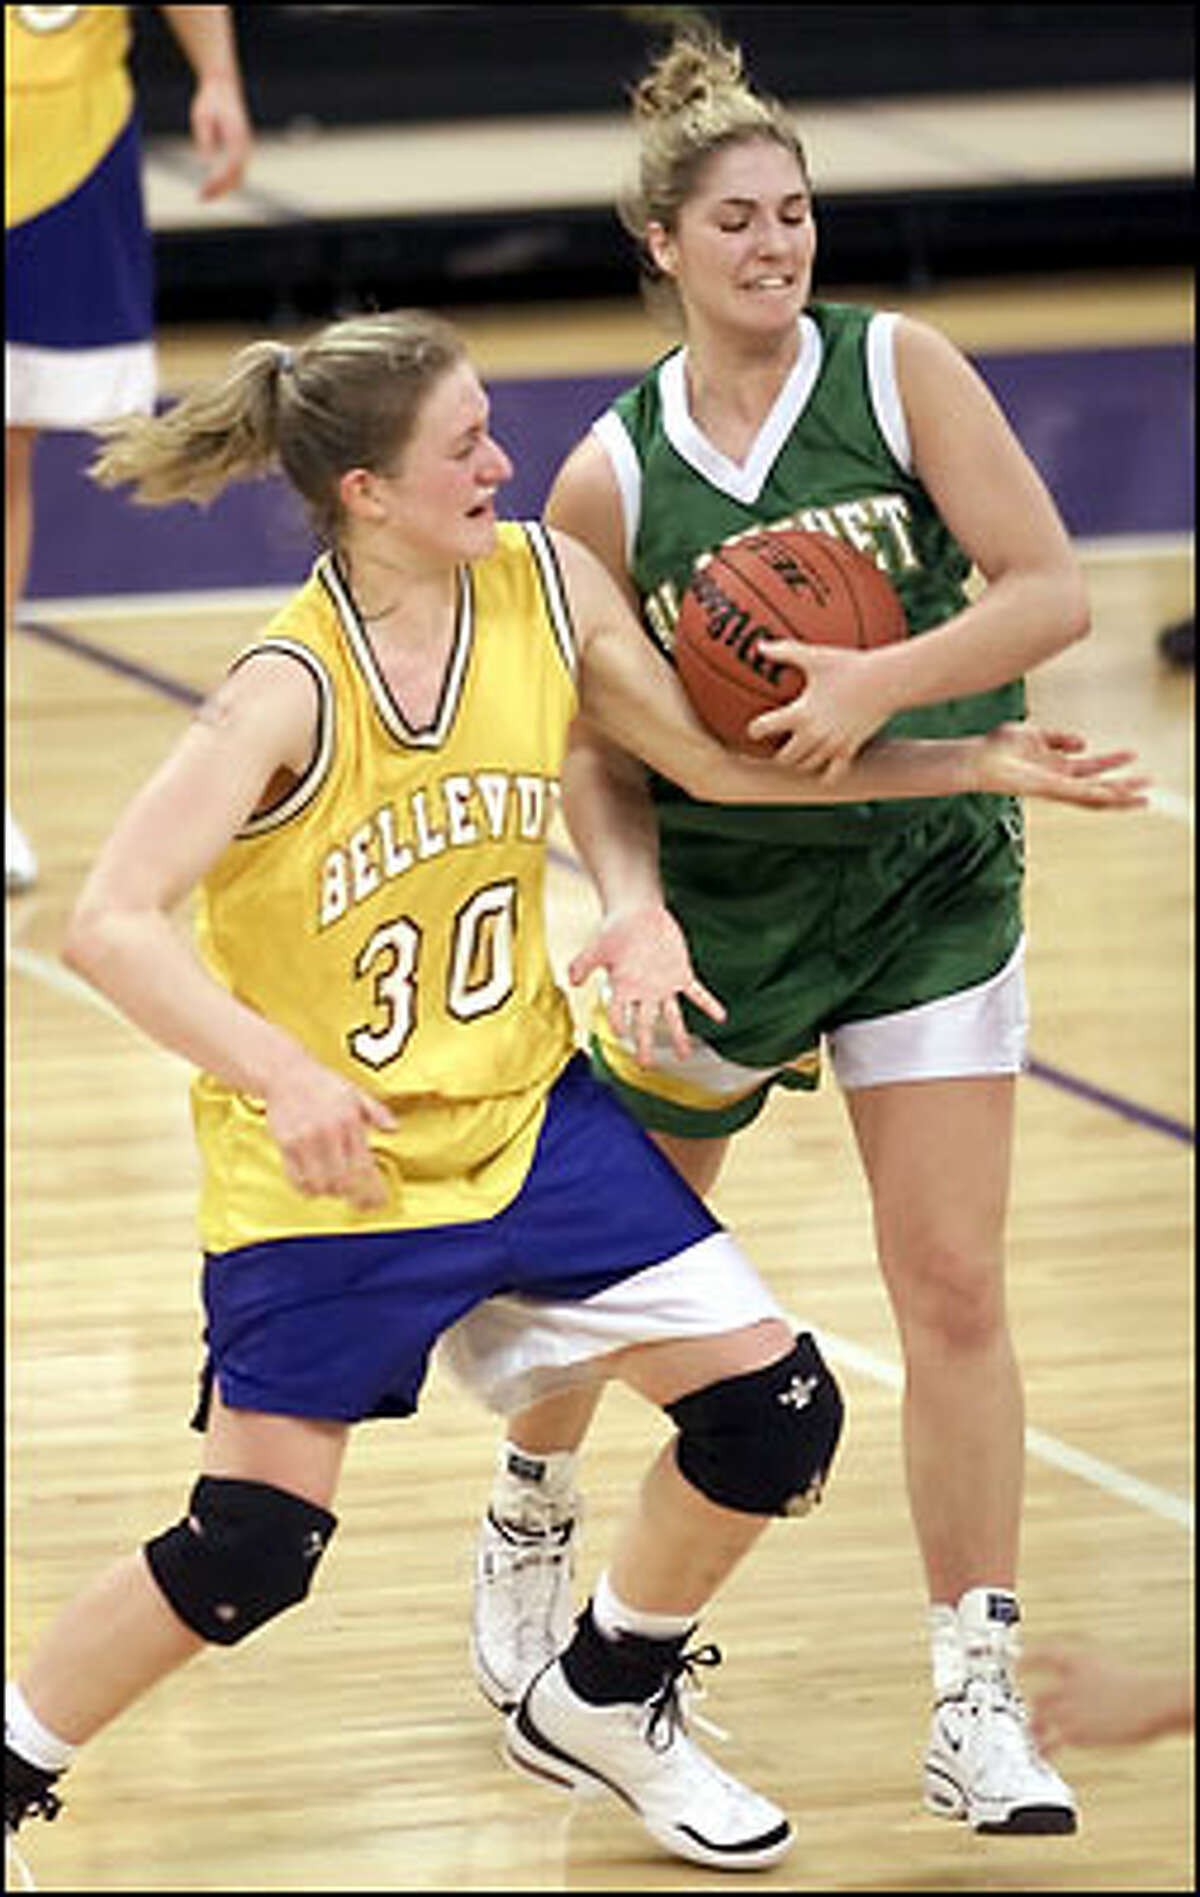 With 1.3 seconds left on the clock, Blanchet's Jen Segadelli rips the ball away from Bellevue's Katie Ludwick to draw the foul. Bellevue went on to win 46-40.